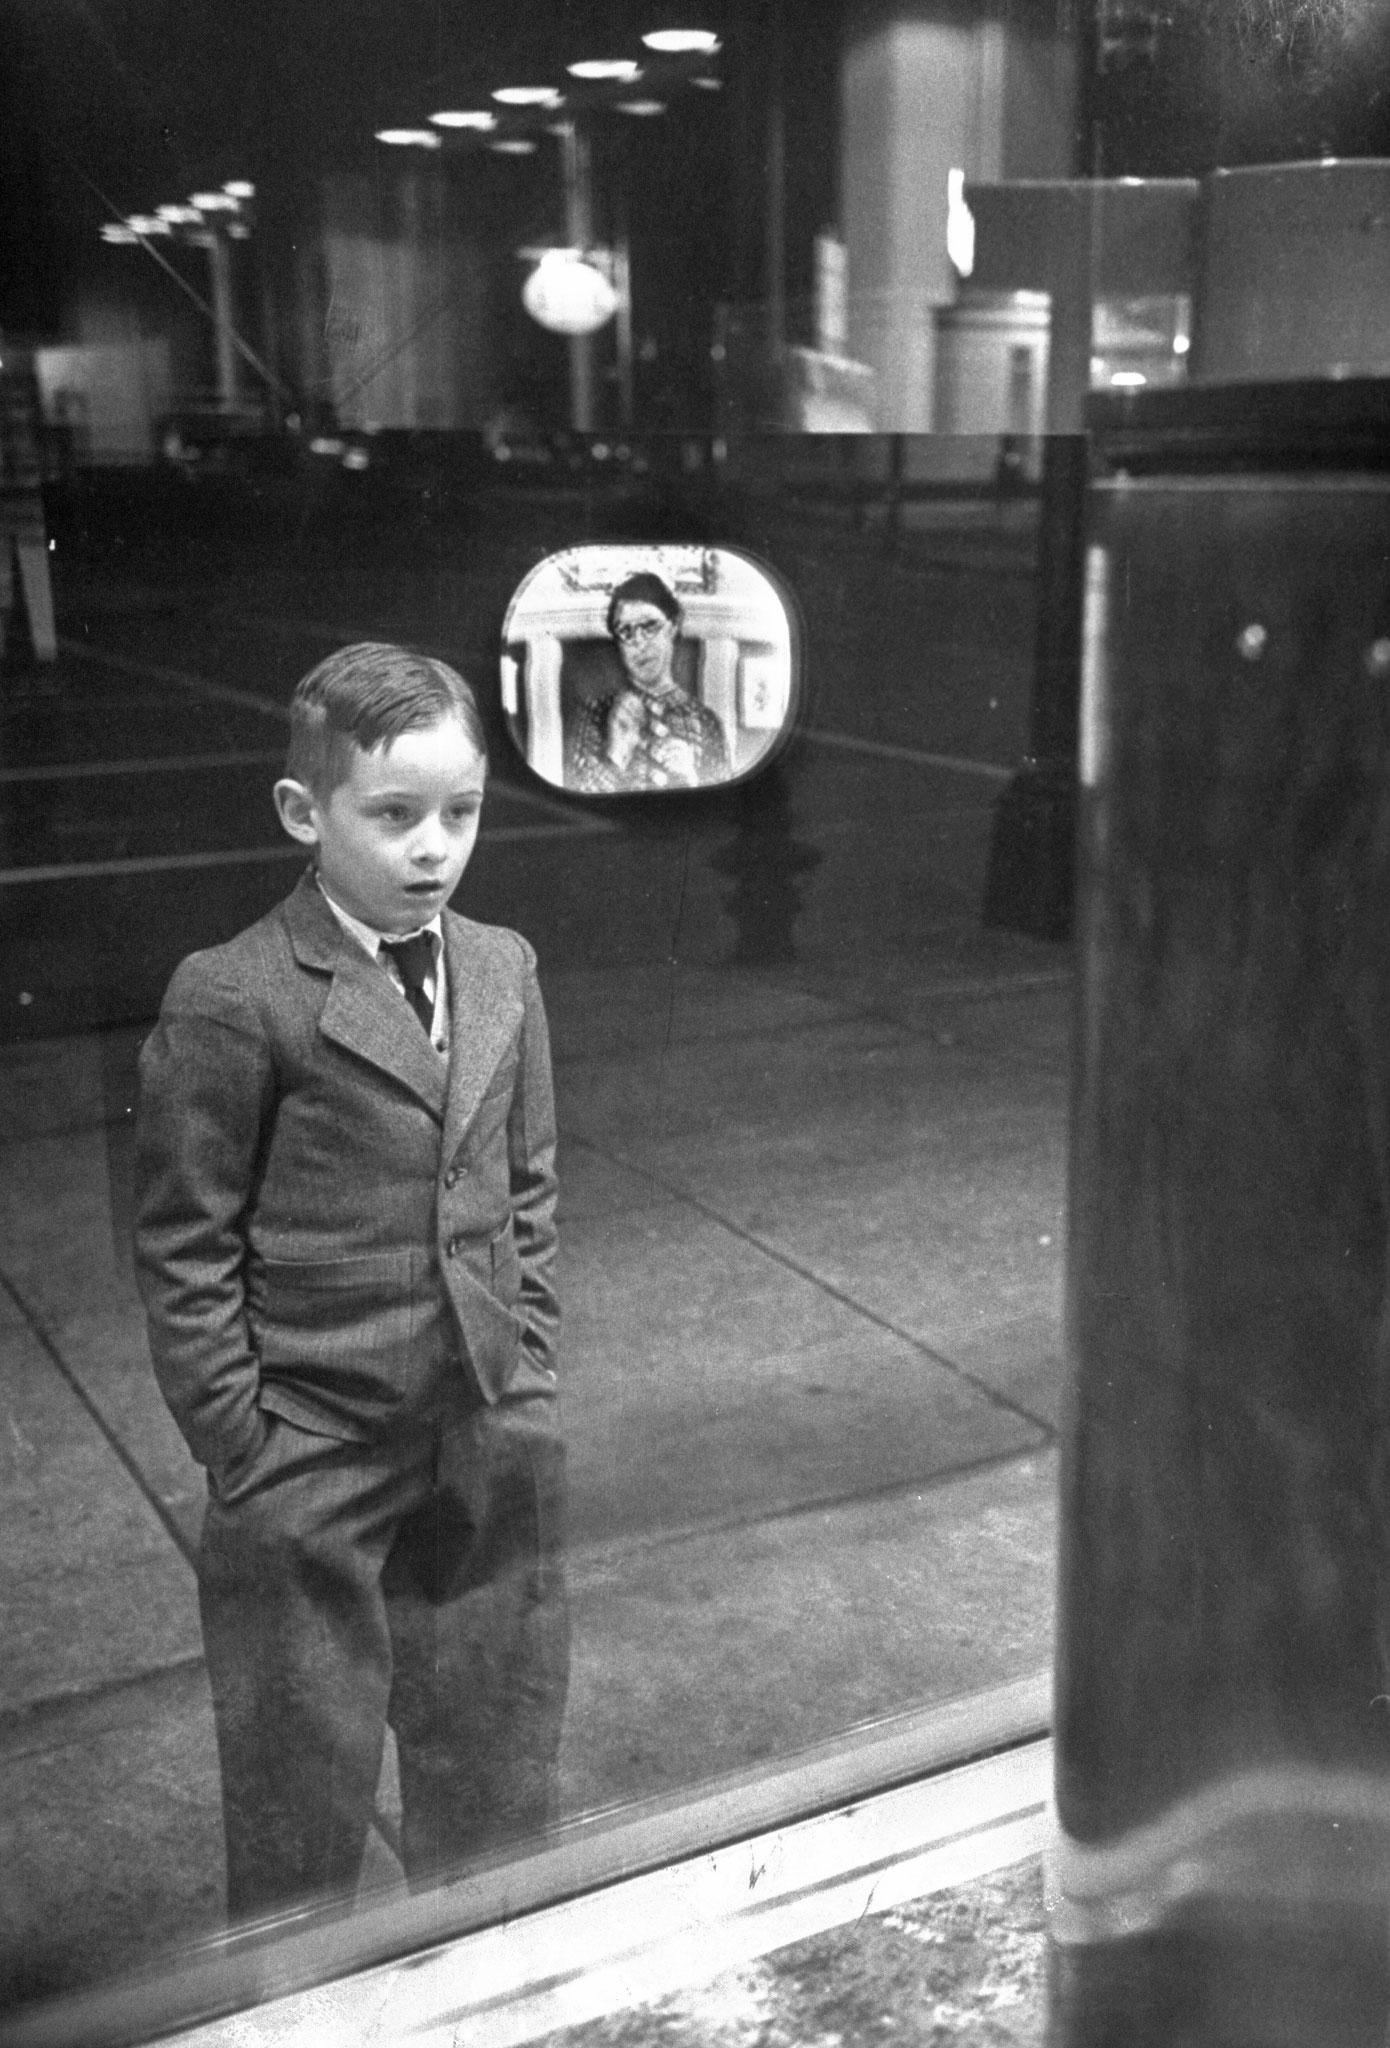 A boy watches TV in an appliance store window in 1948.